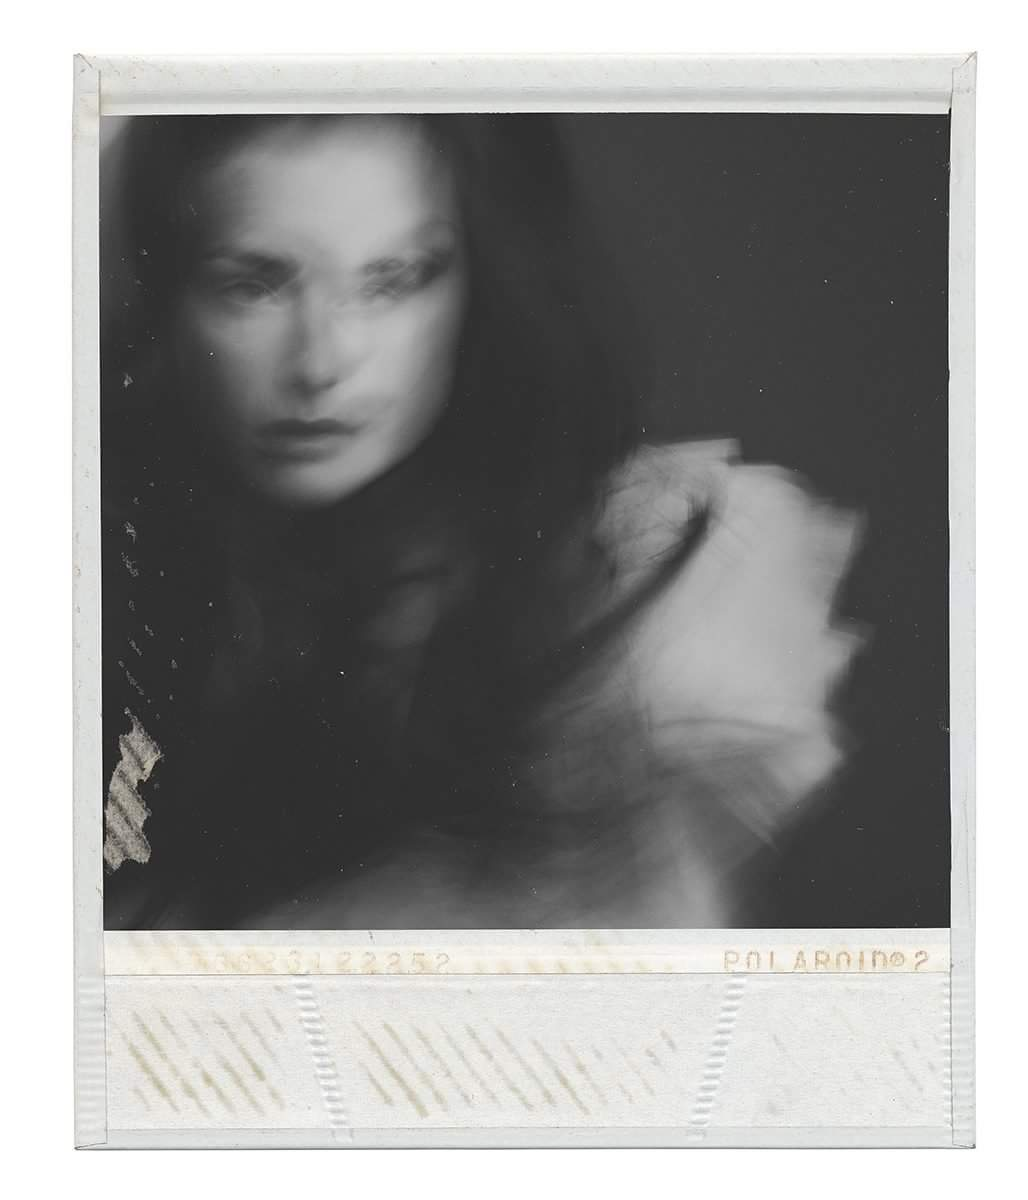 Oxana Mazur, photography, black and white, polaroid, instant, analog photography, dark, obscure